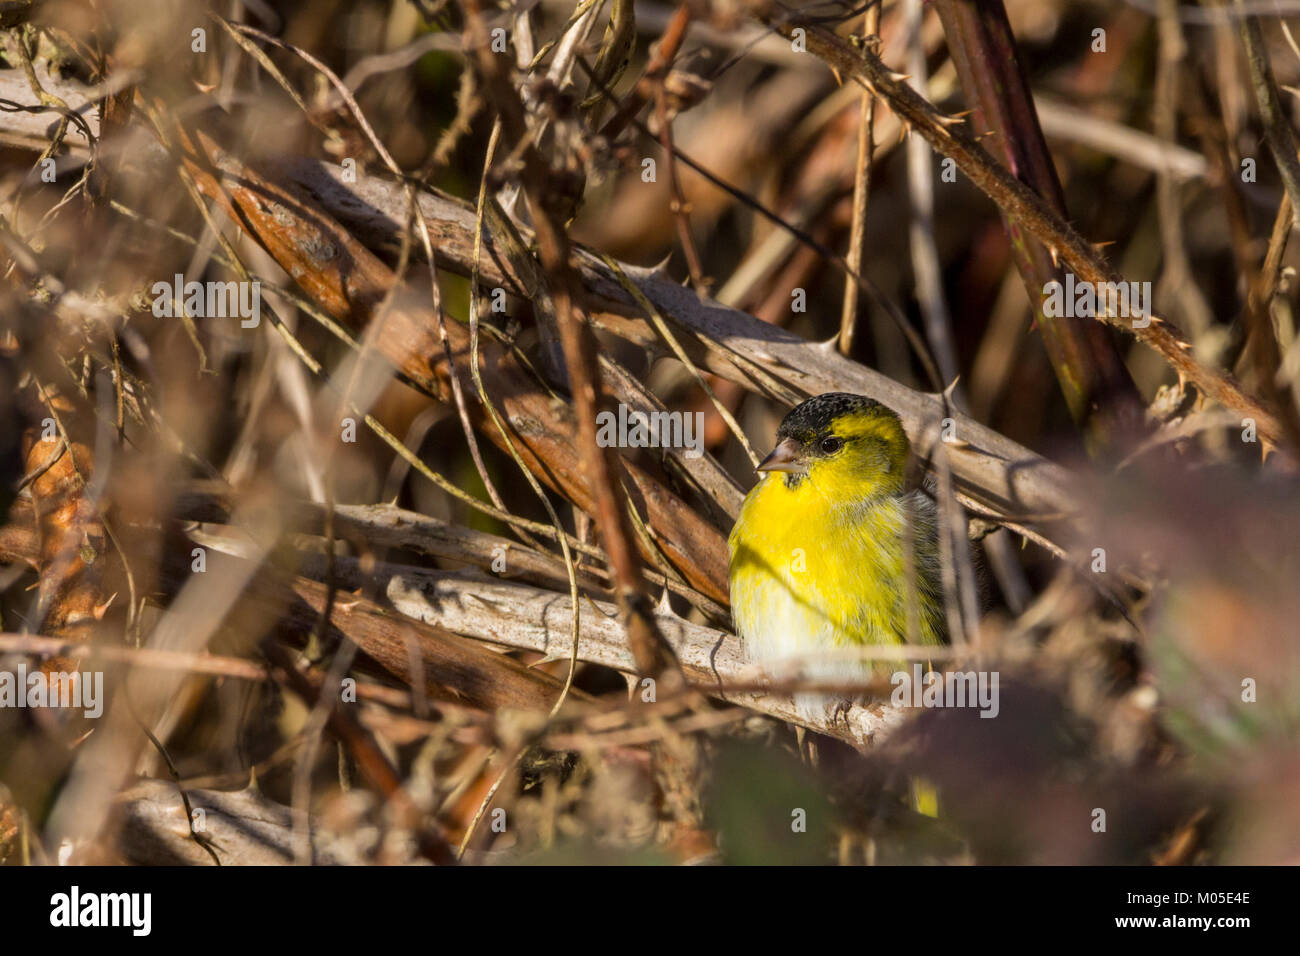 Siskin or Carduelis spinus male deep in brown brambles contrasting with its bright yellow green plumage pale belly Stock Photo